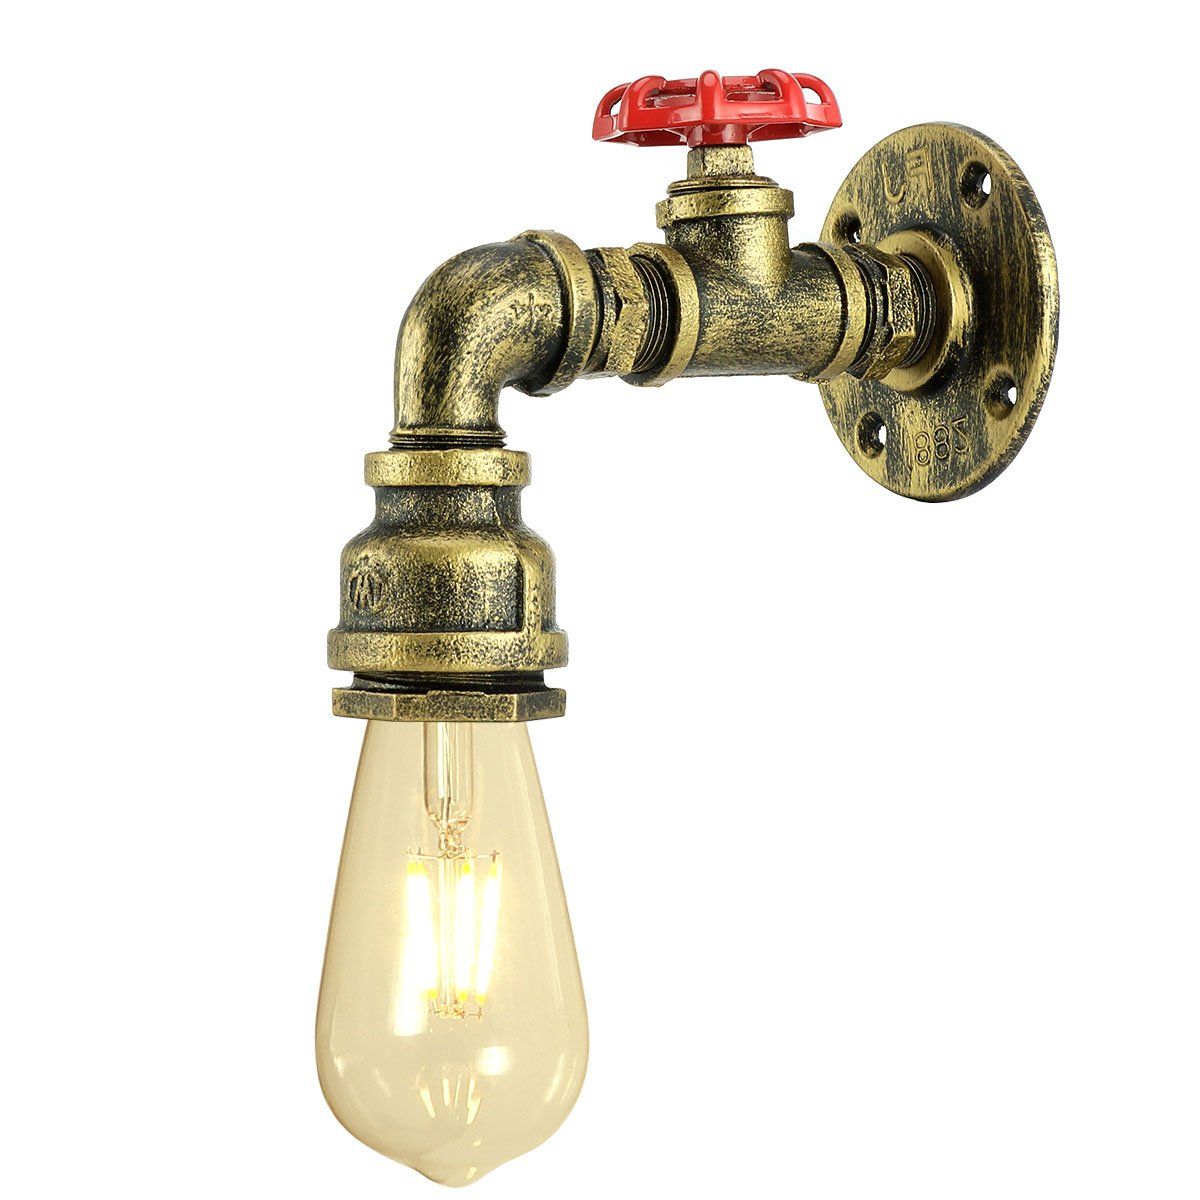 Rust Color Bar KAWELL Vintage Wall Lamp Industrial Retro Wall Light Creative Water Pipe Wall Sconce Iron Metal E27 60W Max for Restaurant Cafe Kitchen,Bedroom